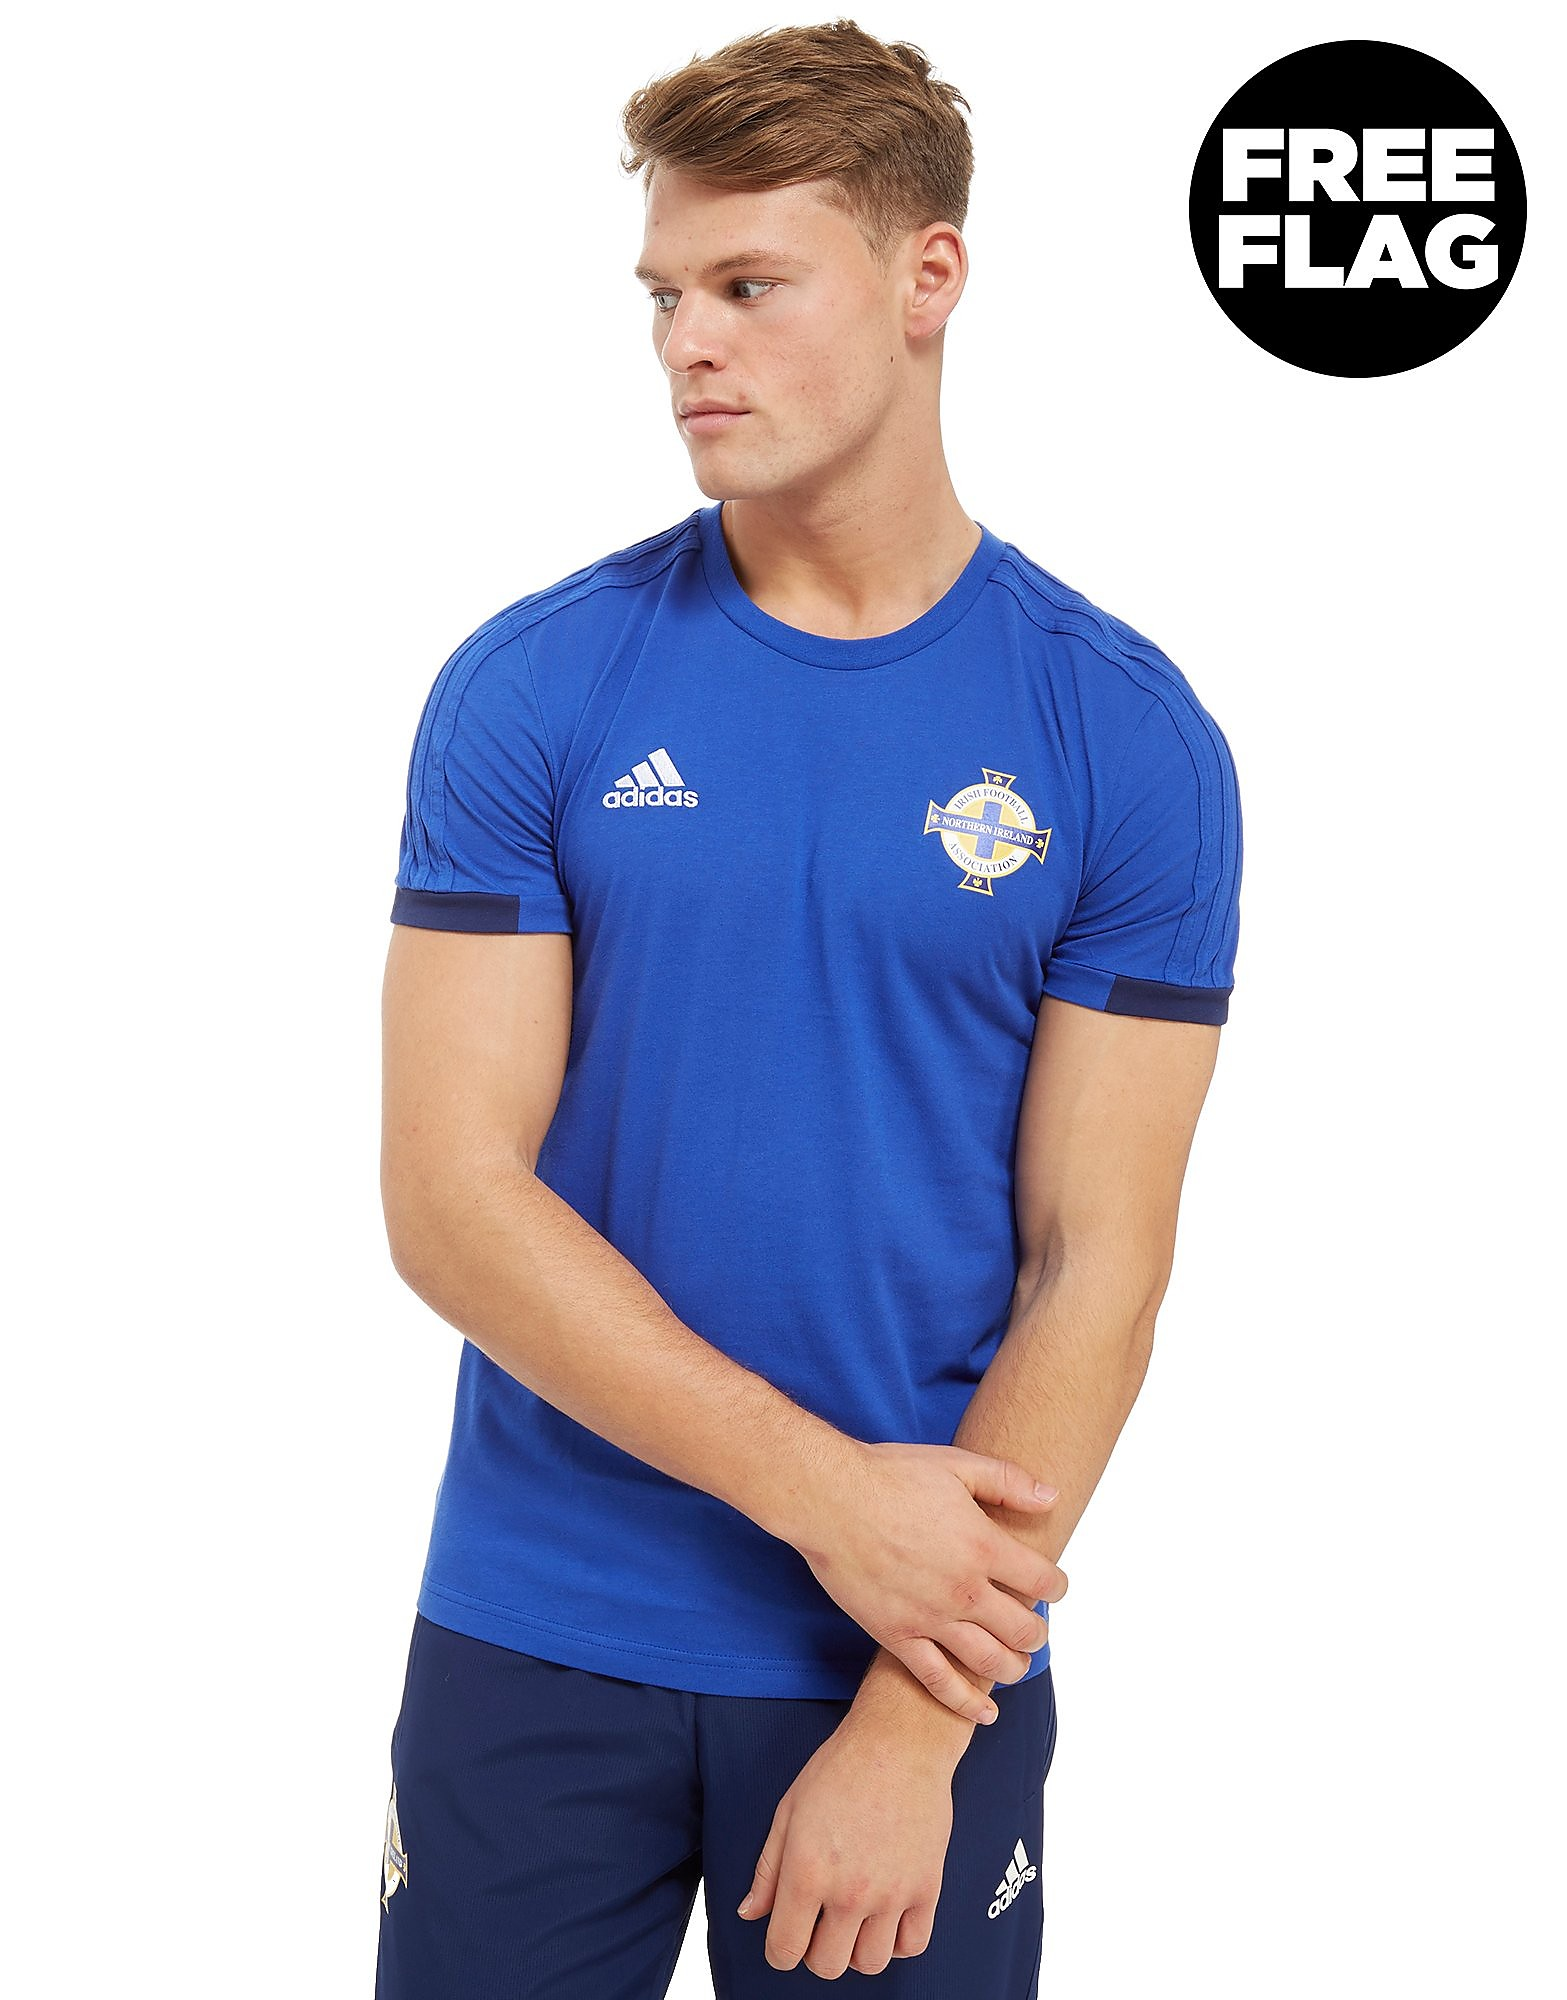 adidas Northern Ireland 2018 T-Shirt